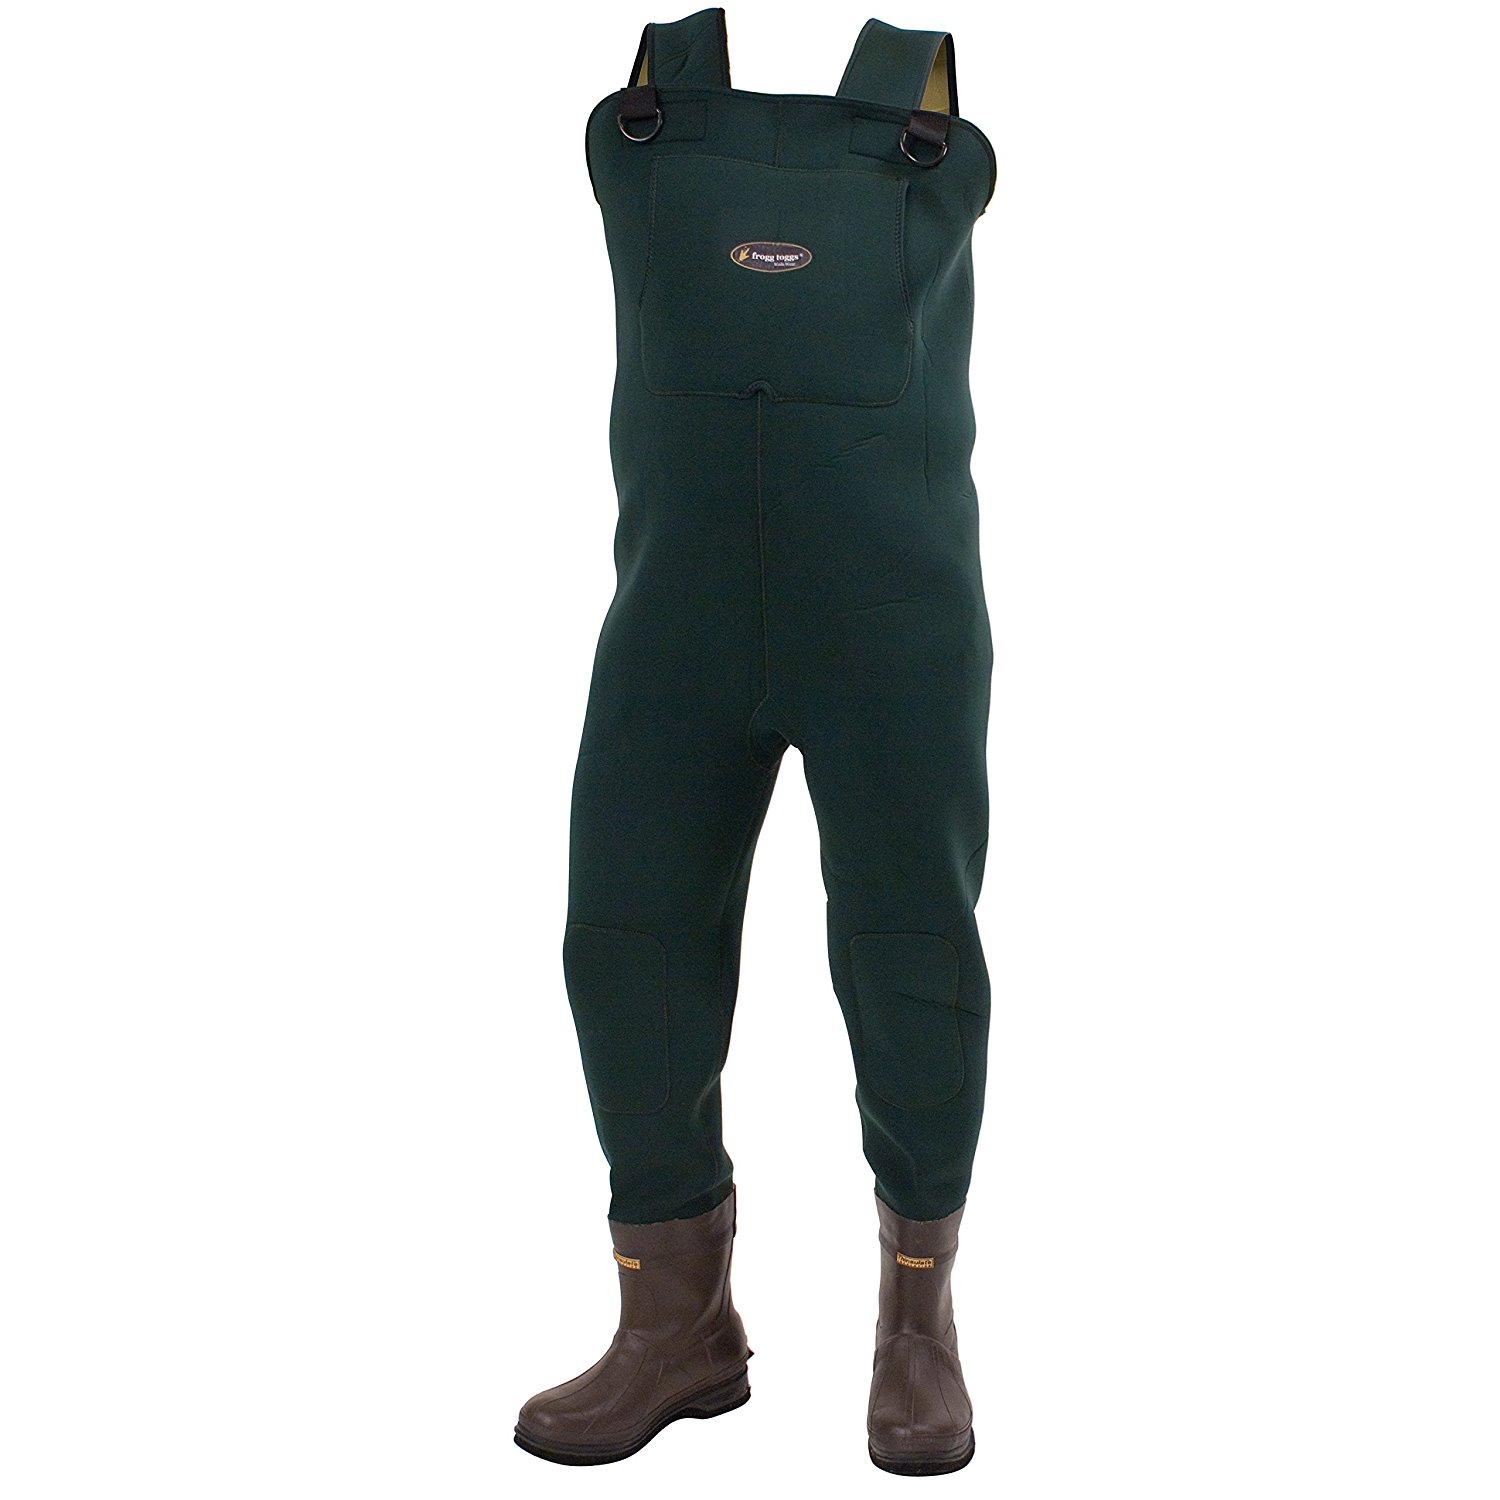 Frogg Toggs Amphib Neoprene Bootfoot Cleated Wader